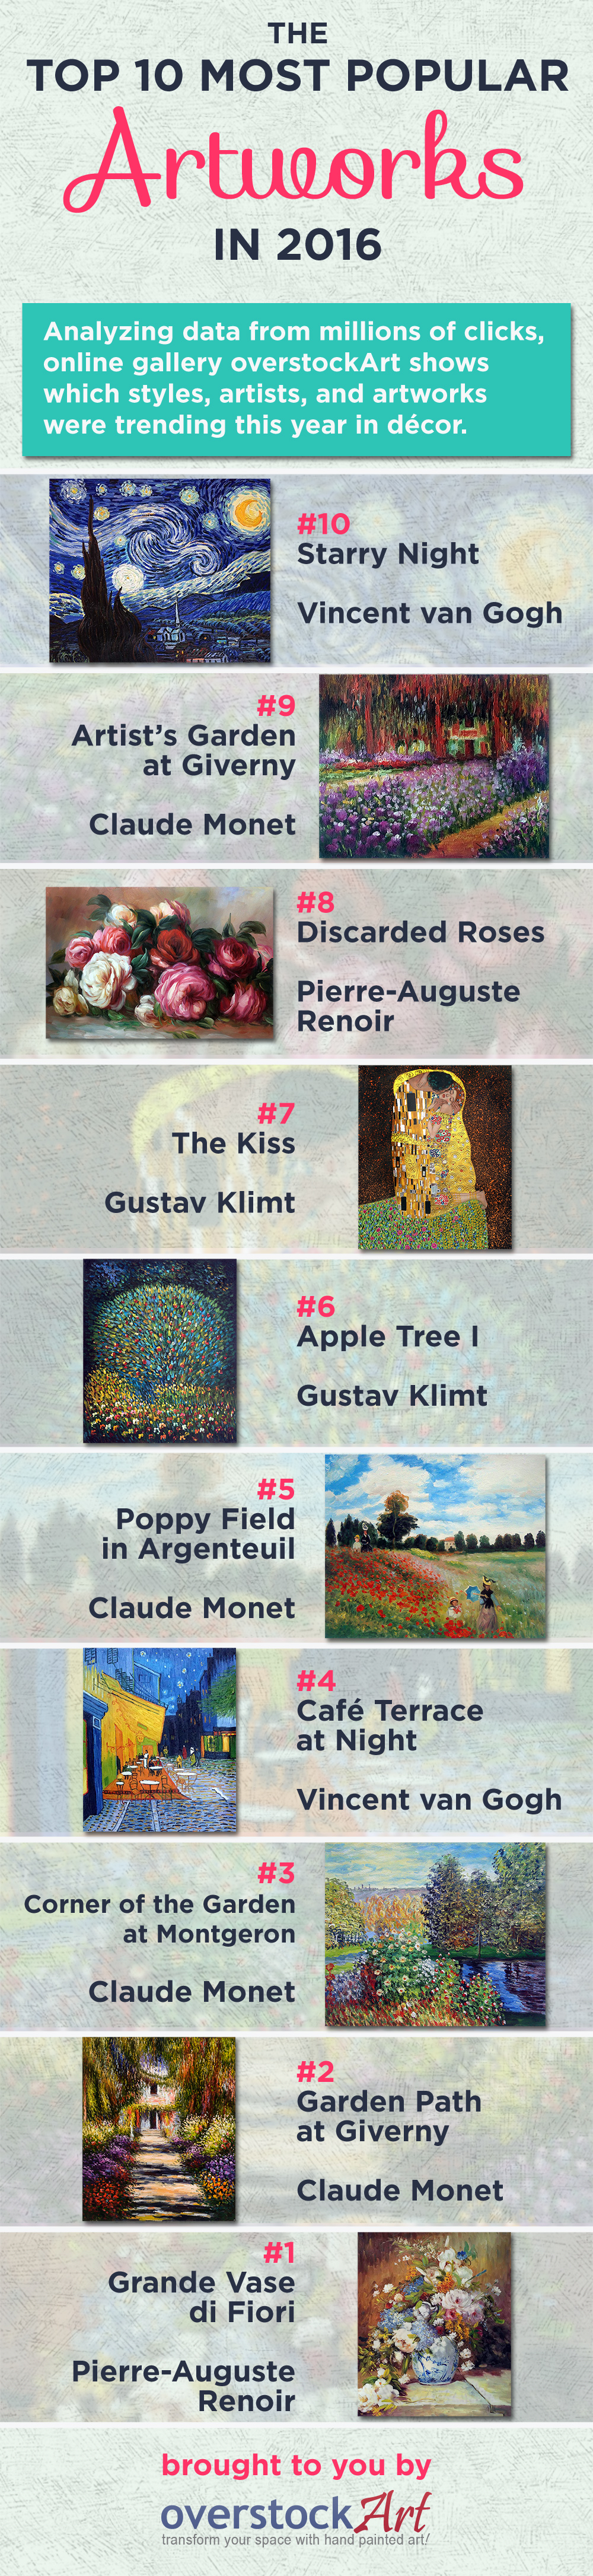 Top Ten Oil Paintings for 2016 Infographic